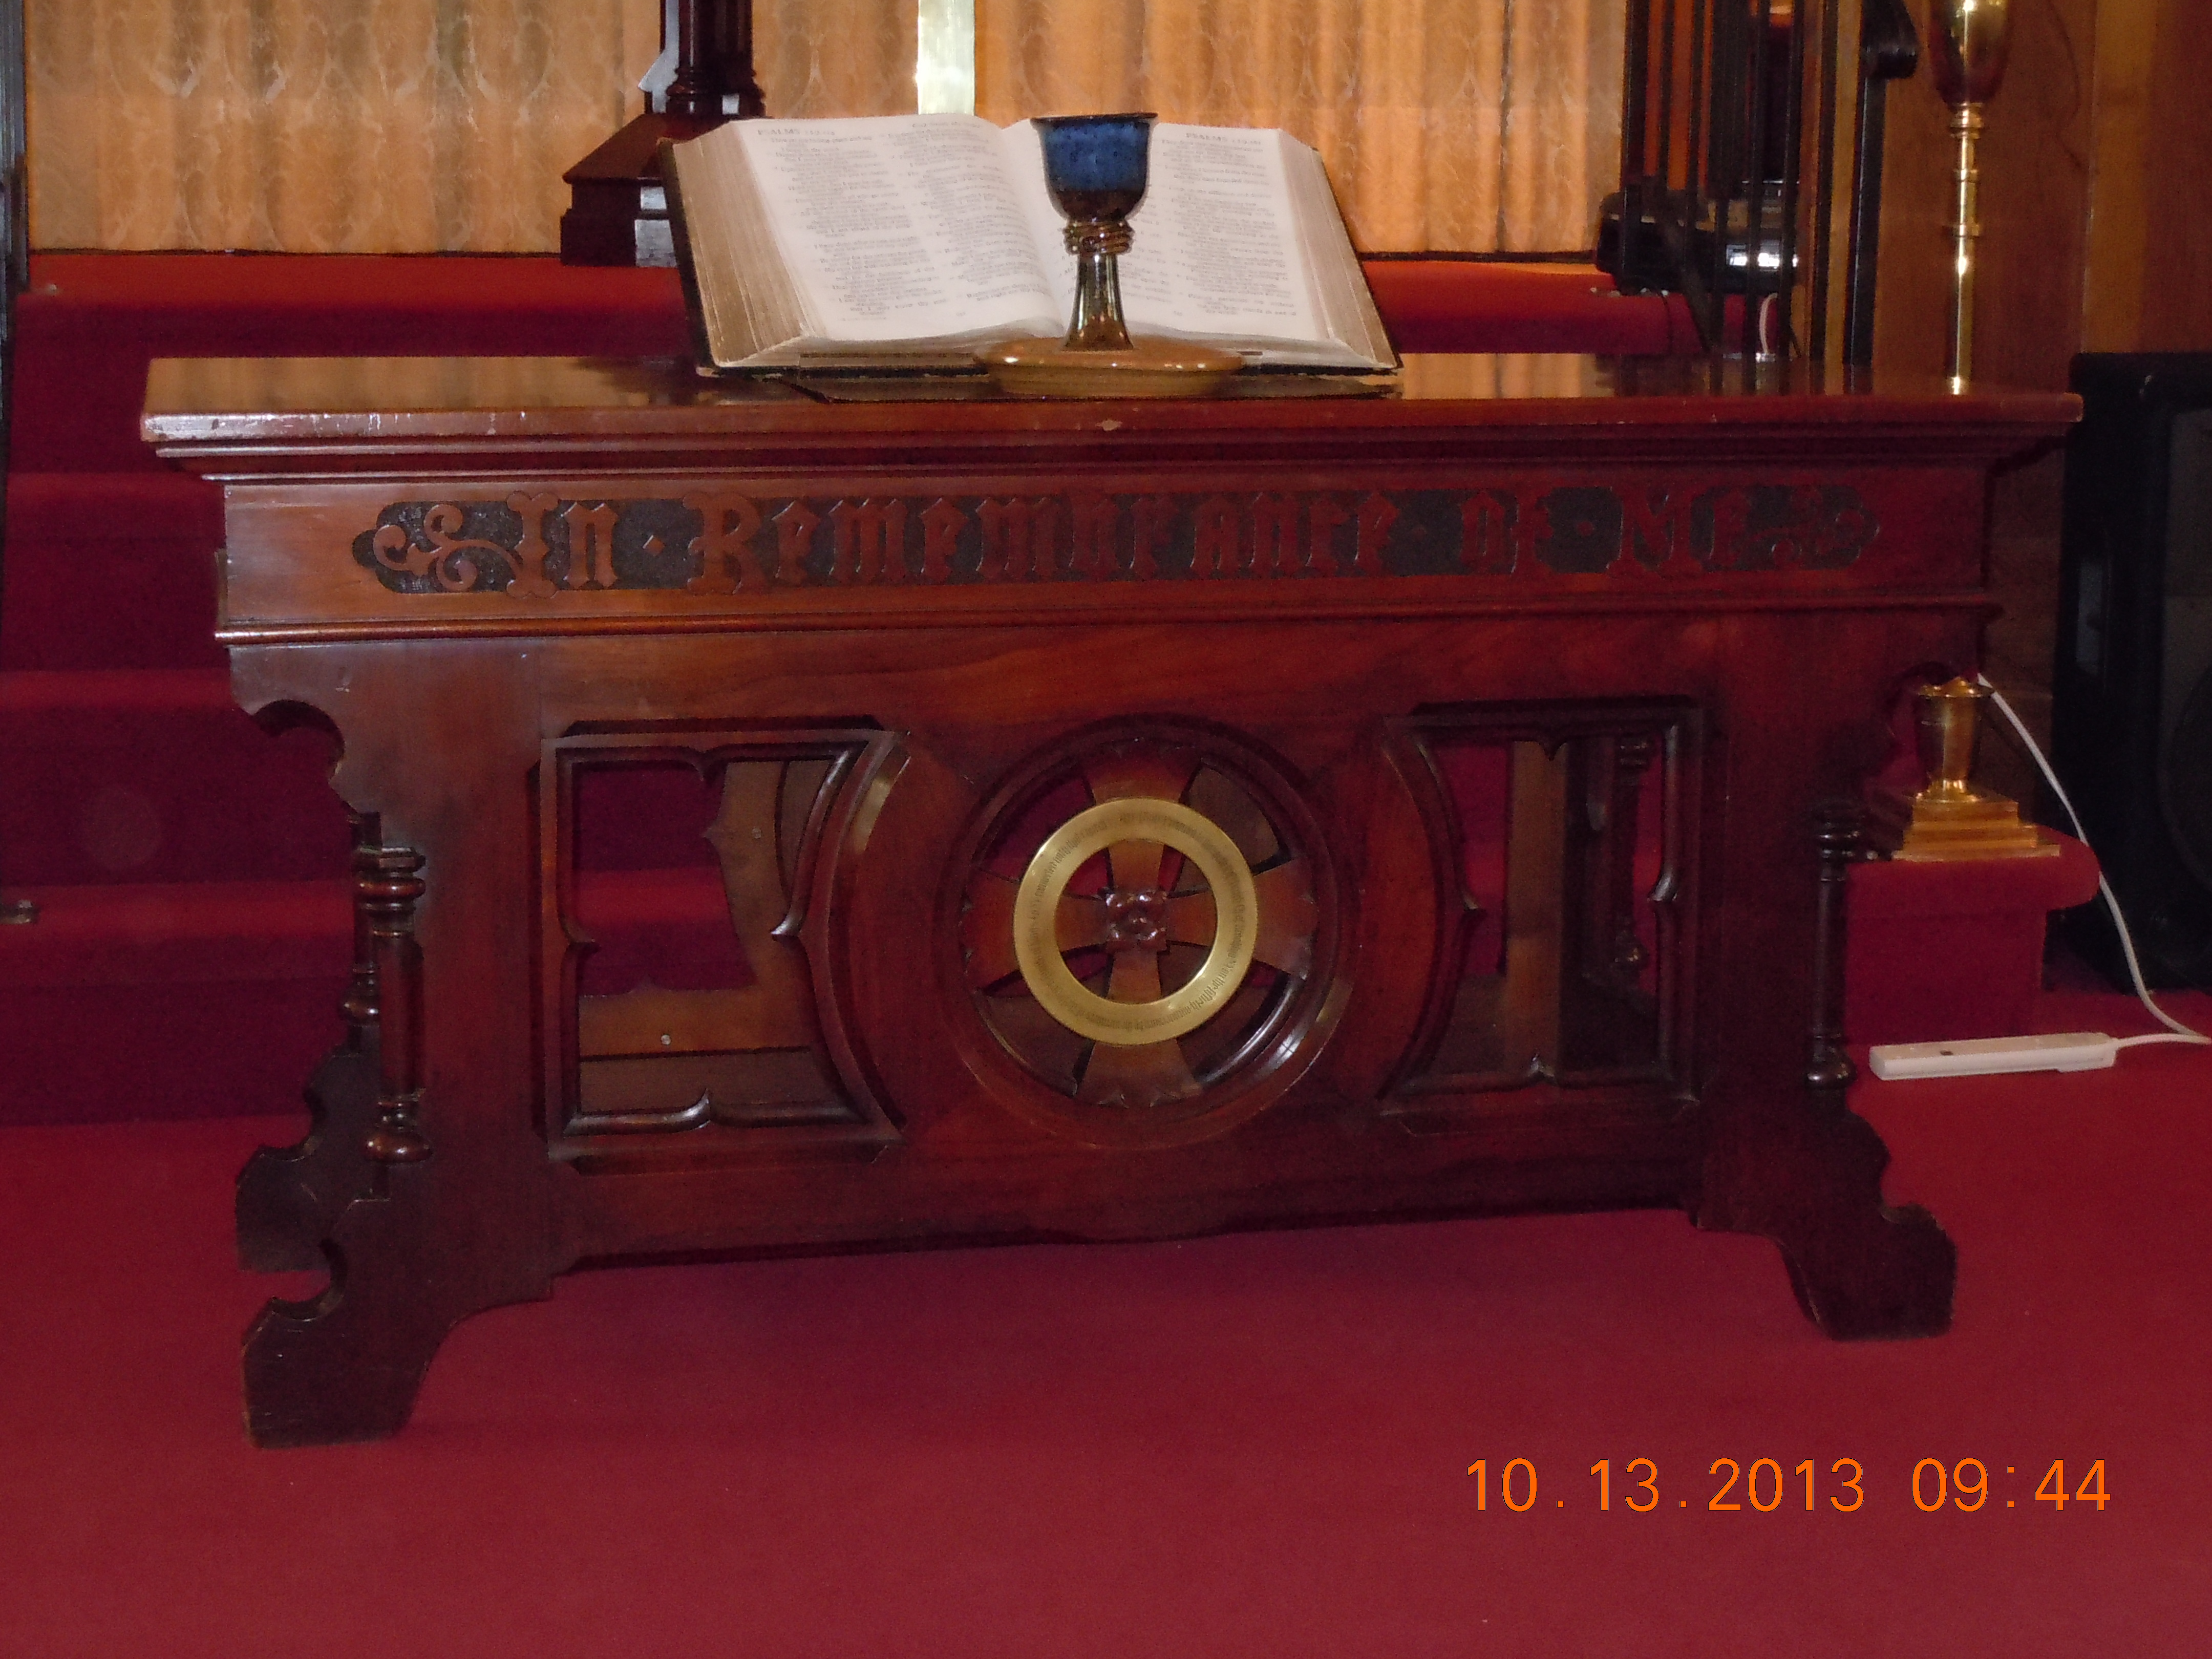 file:bruc south reformed communion table - wikimedia commons